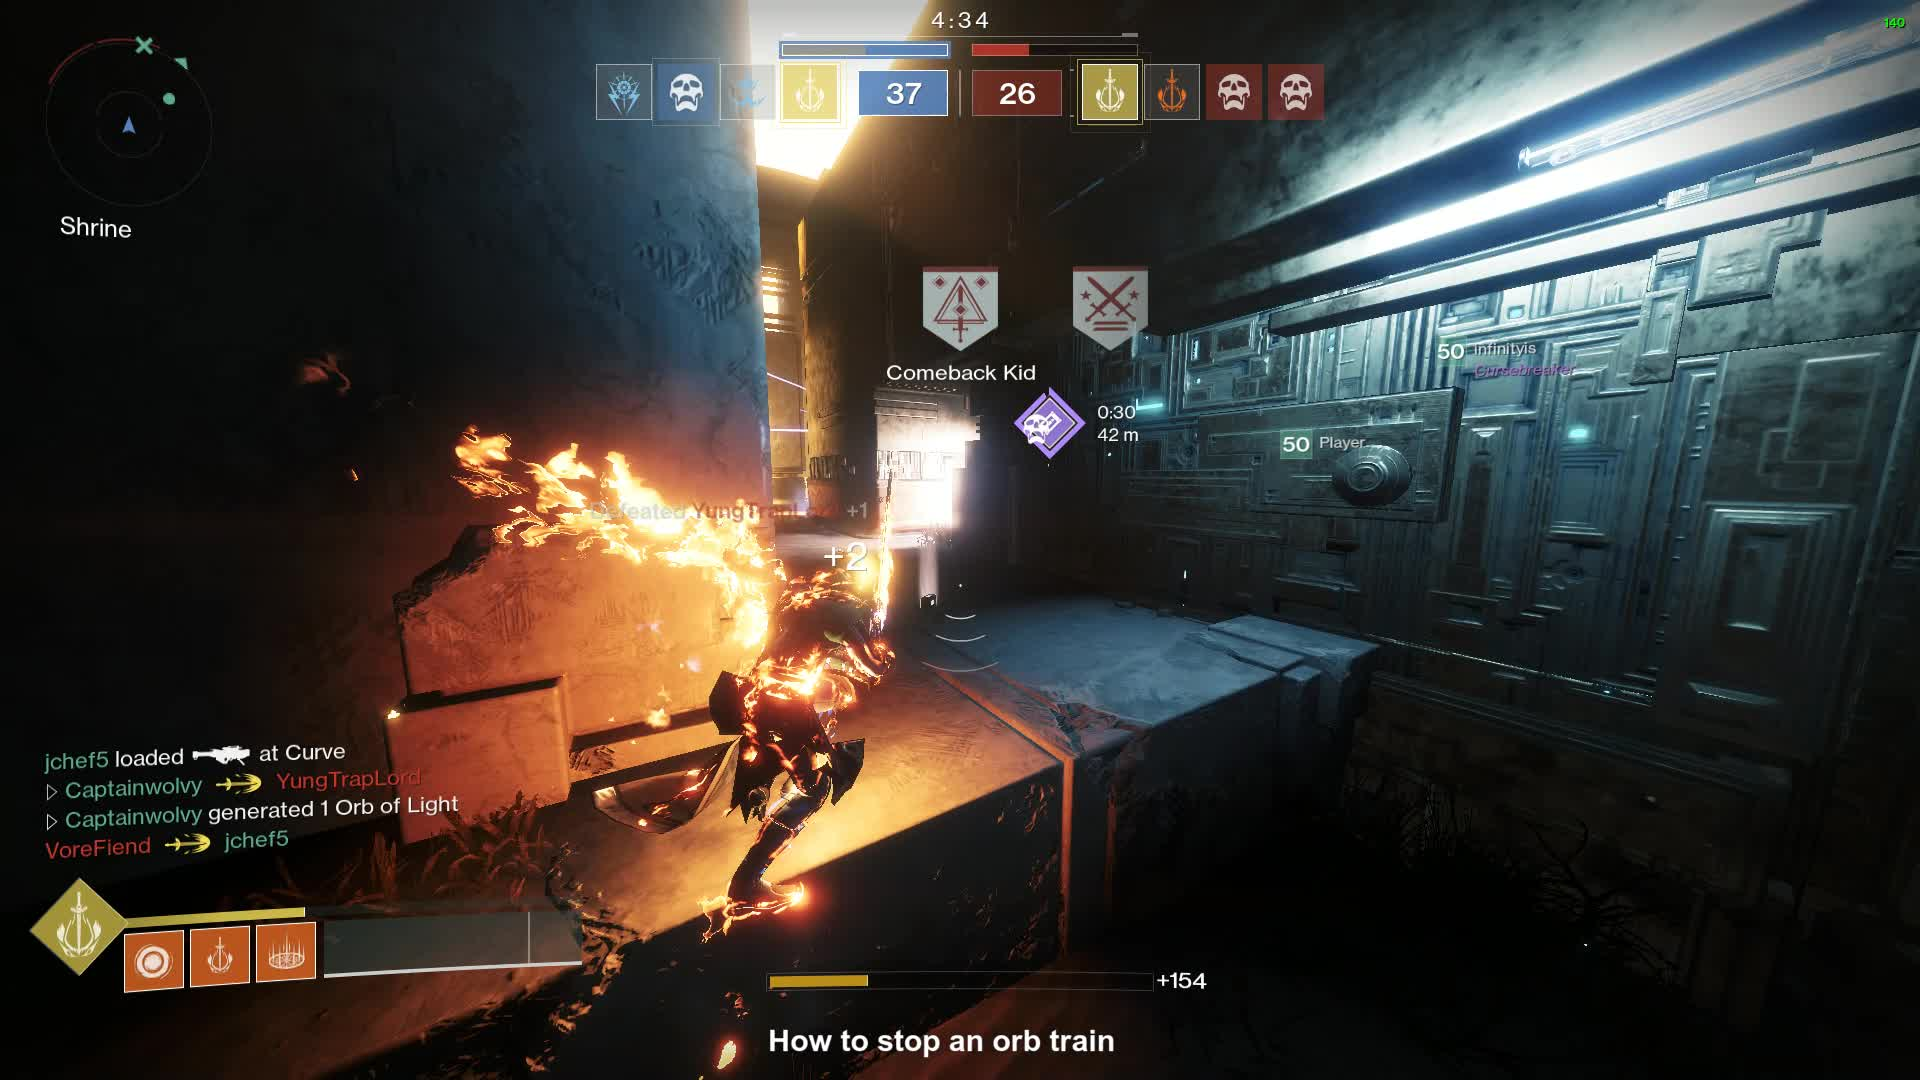 destiny2, how to stop an orb train GIFs